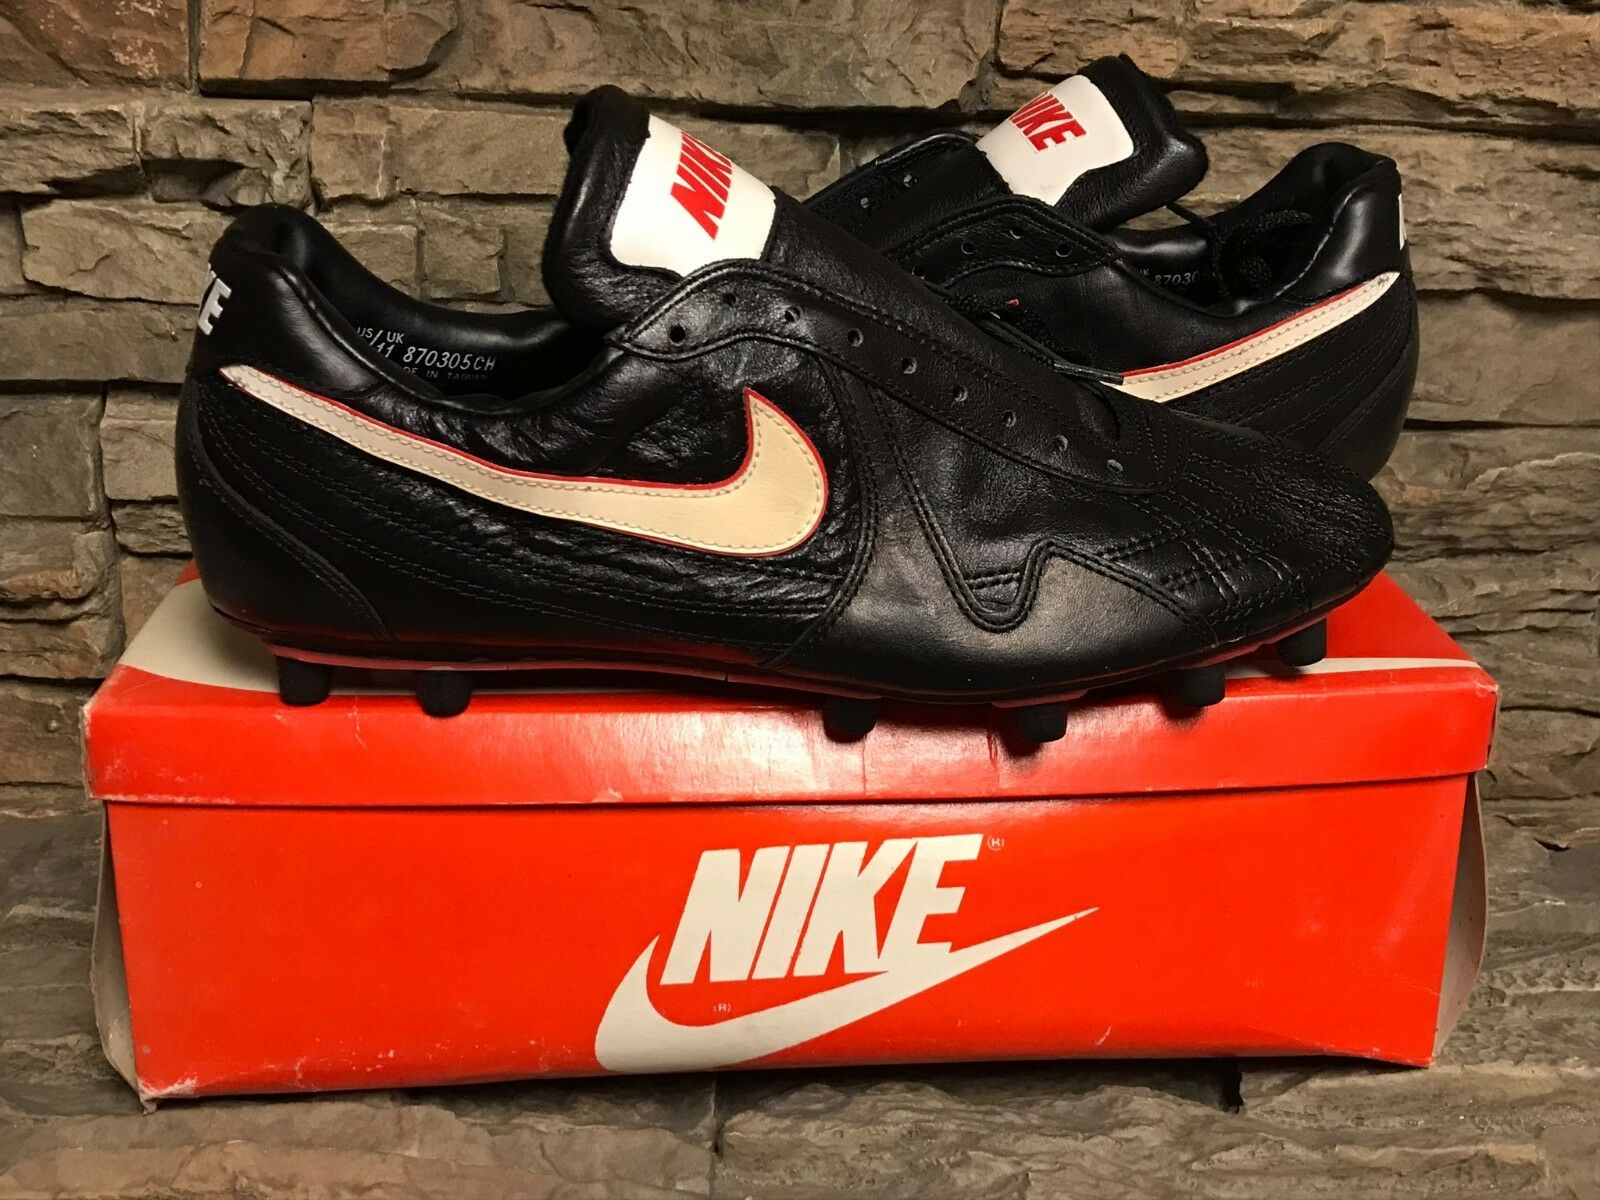 VTG OG Nike Albion Soccer Cleats Shoes New With Box NOS Uomo Sz 12